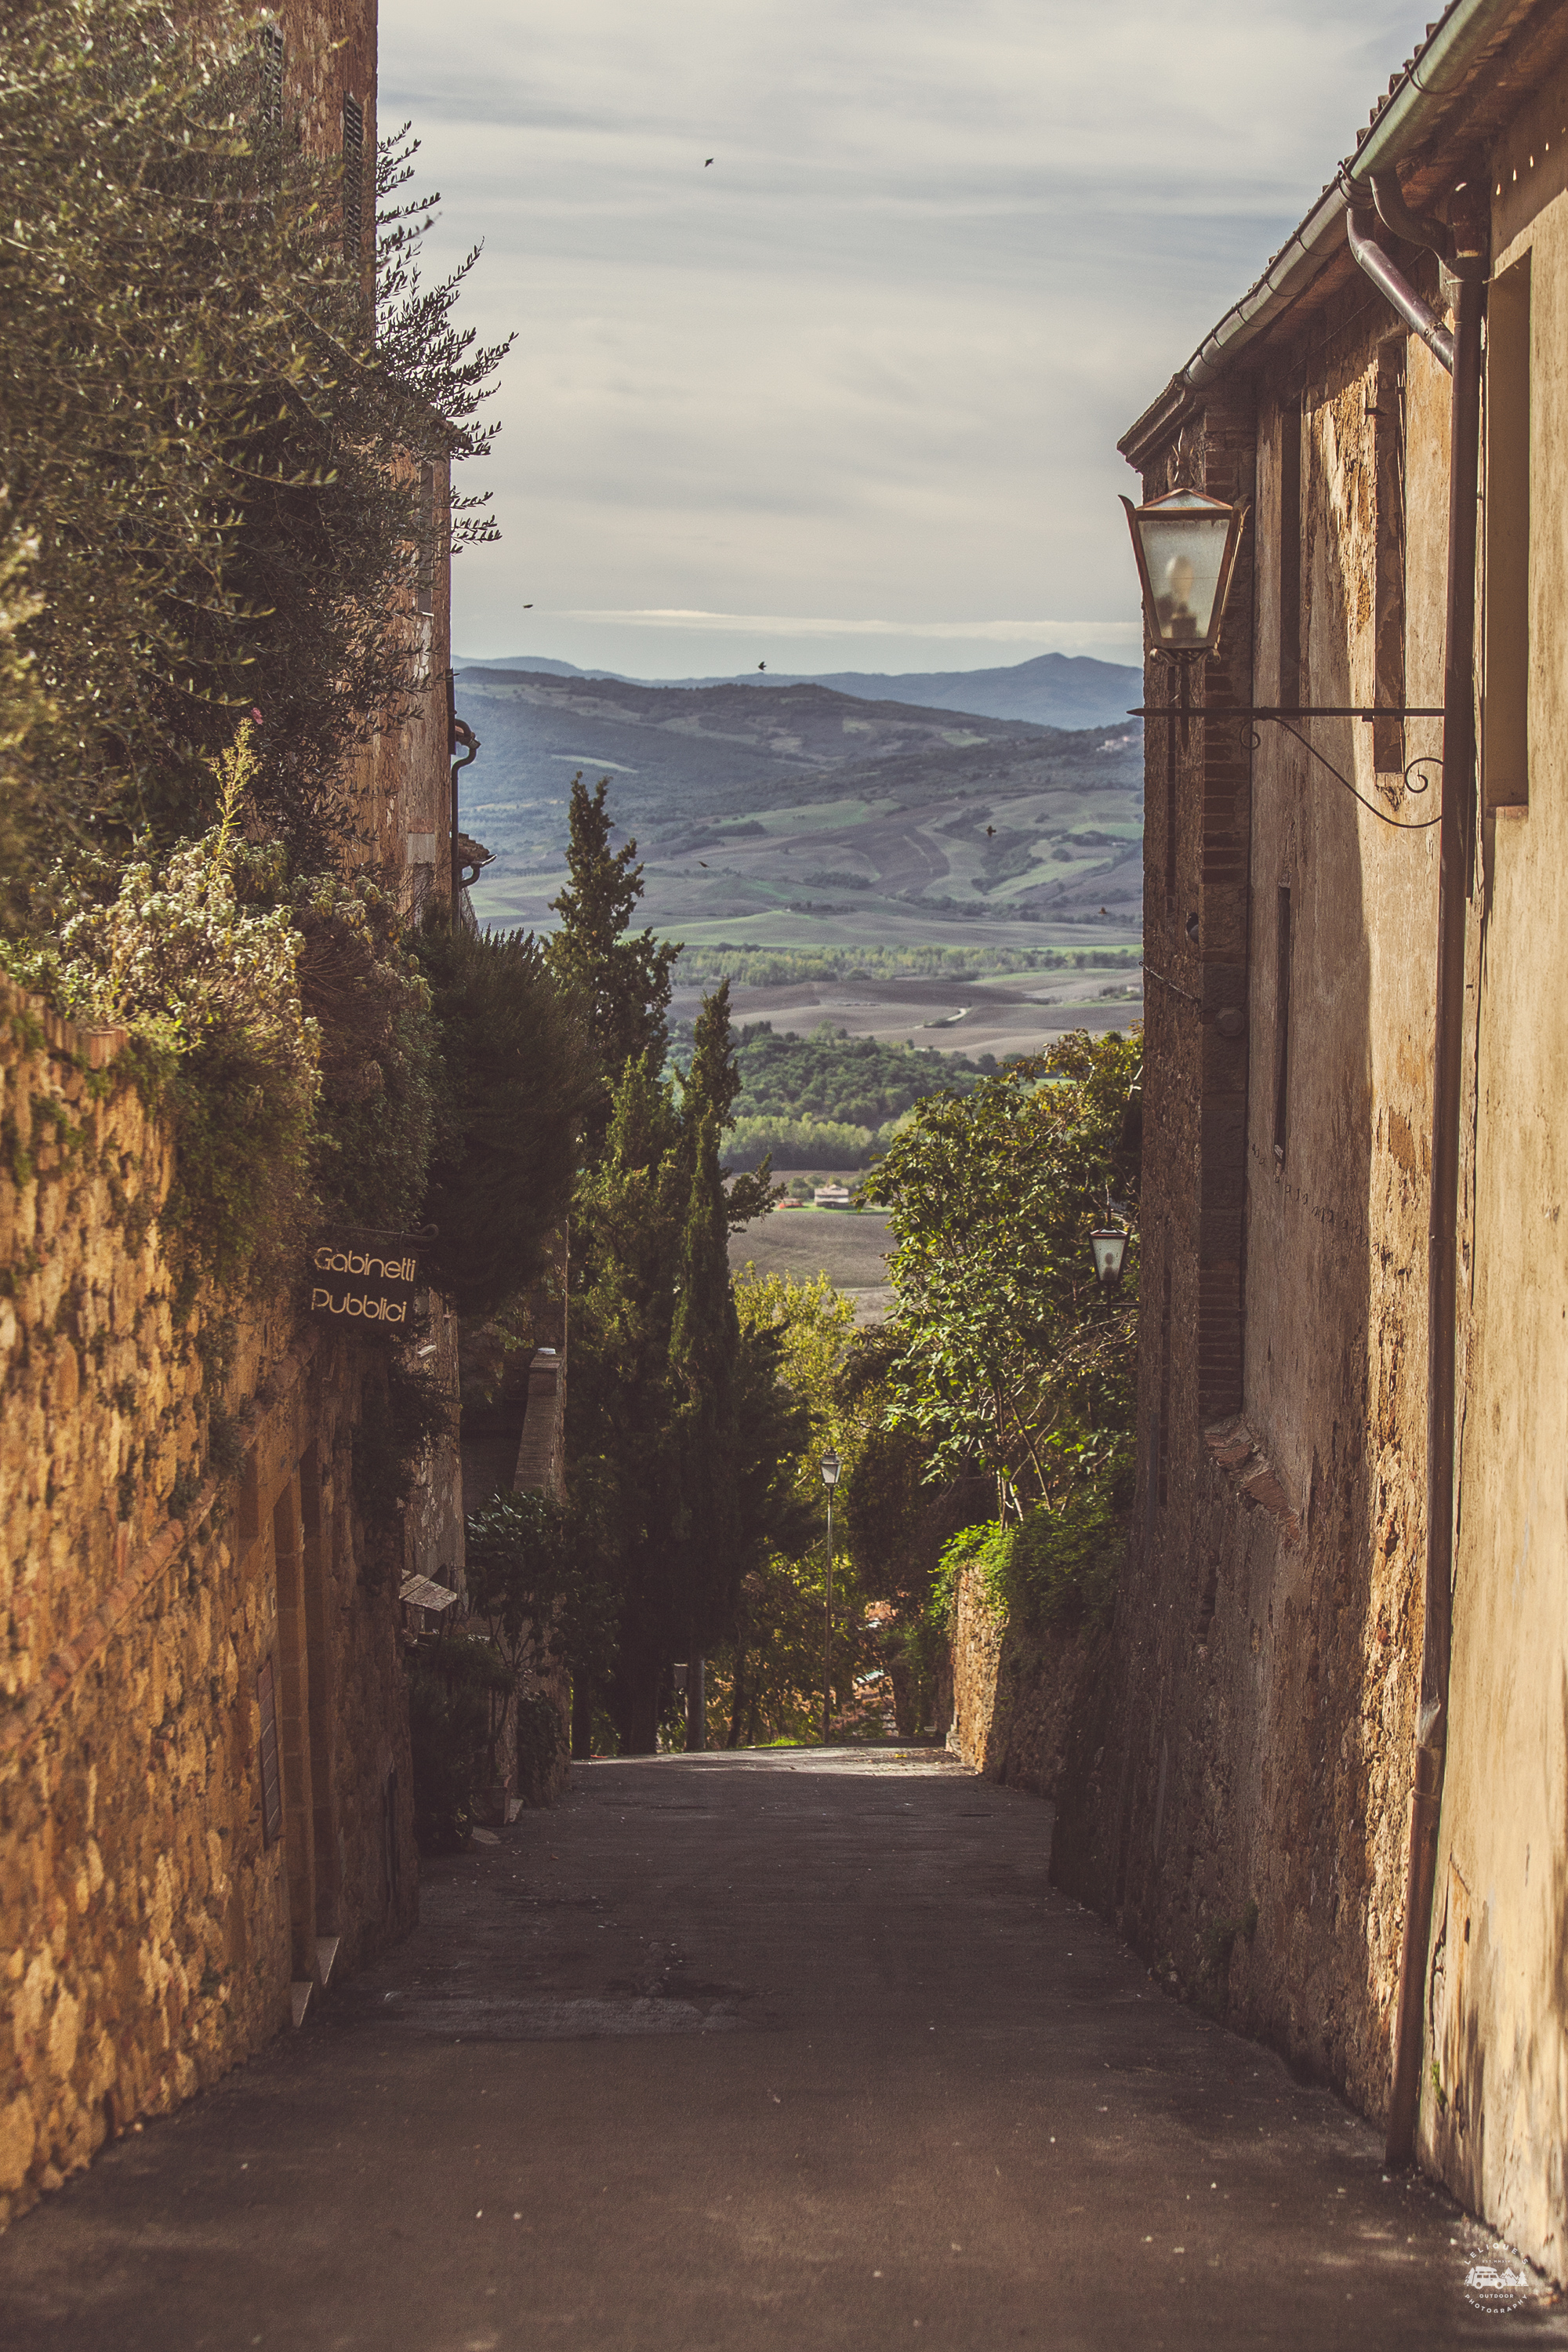 Pienza [Photo Credits: Alexey - Lelique - Zinovev]